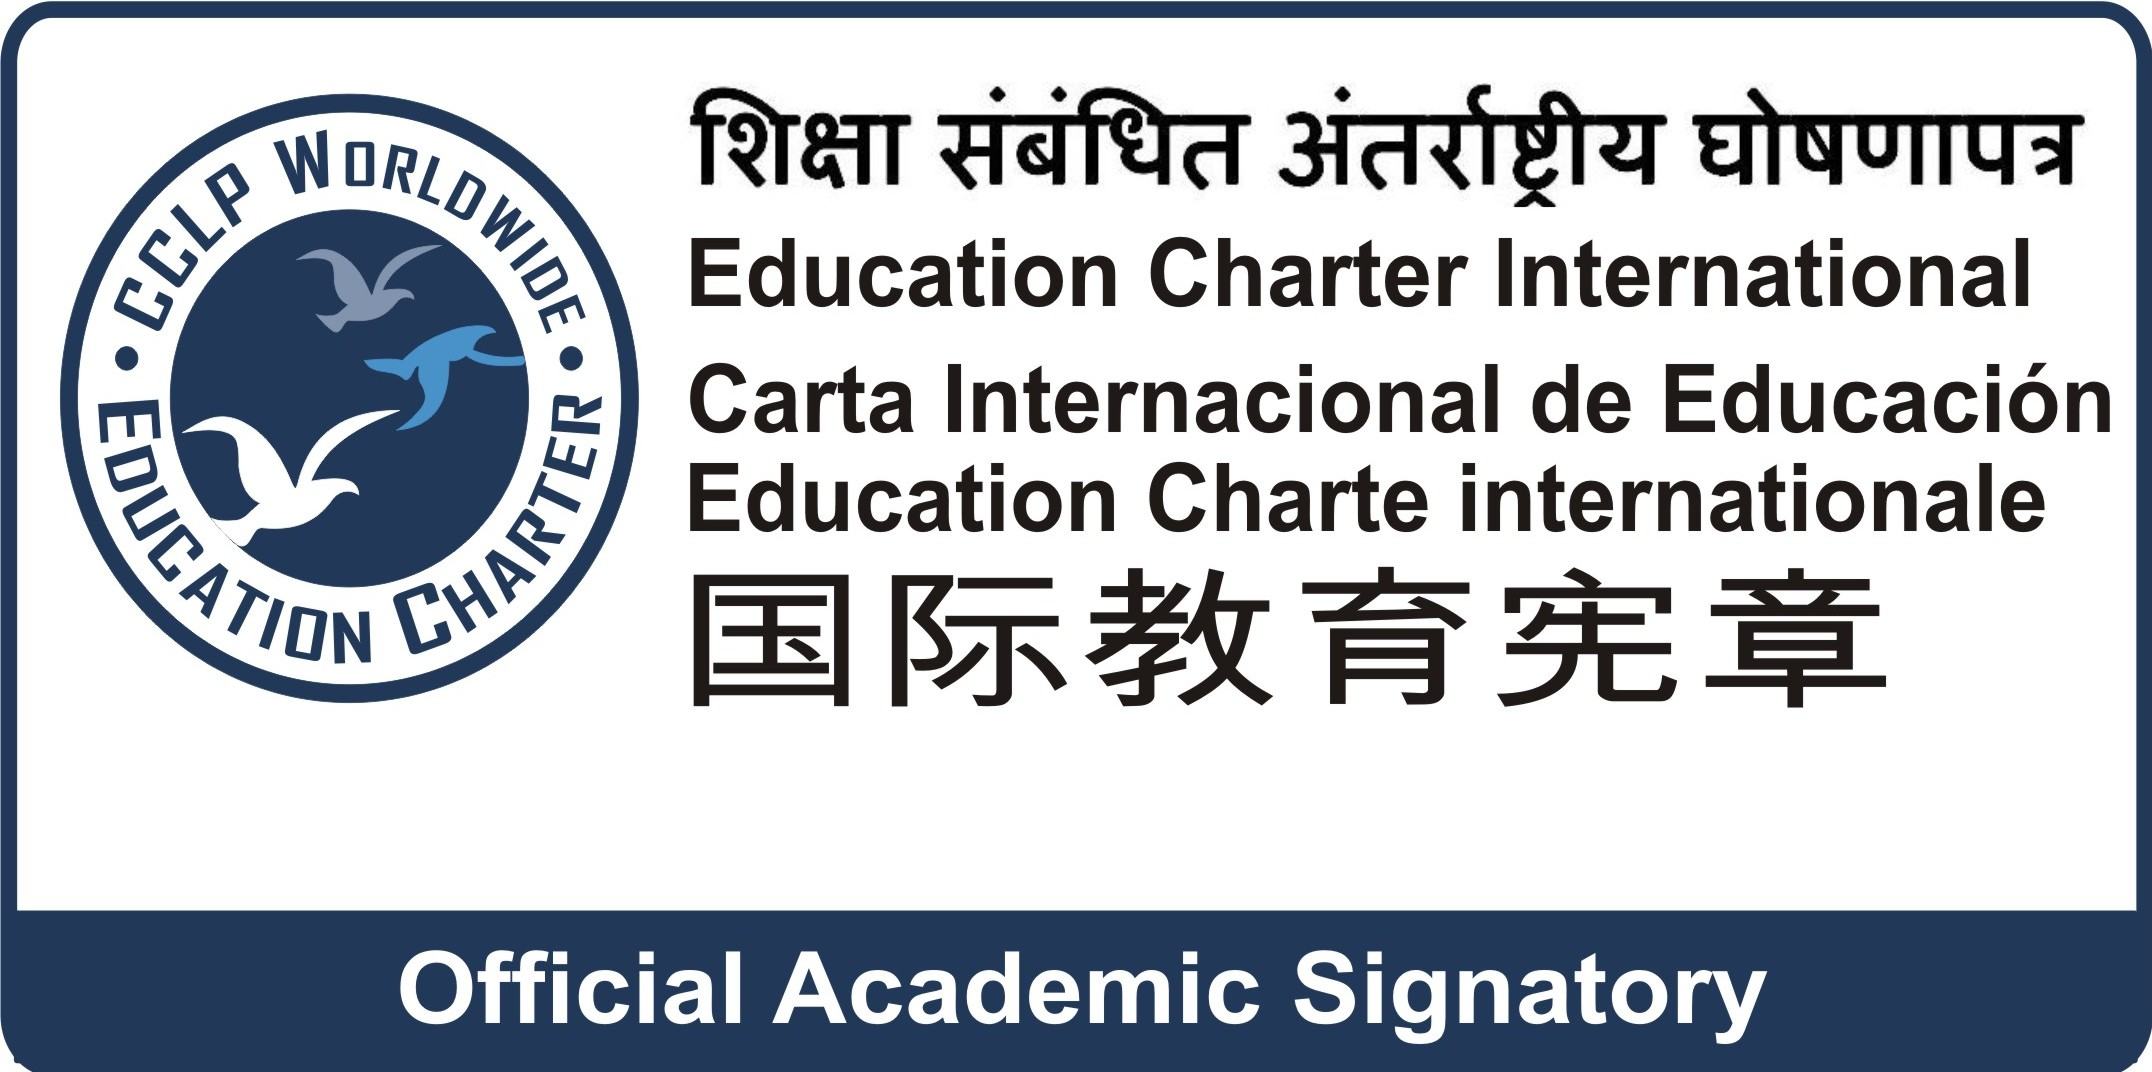 education charter signatory-academic (32K)